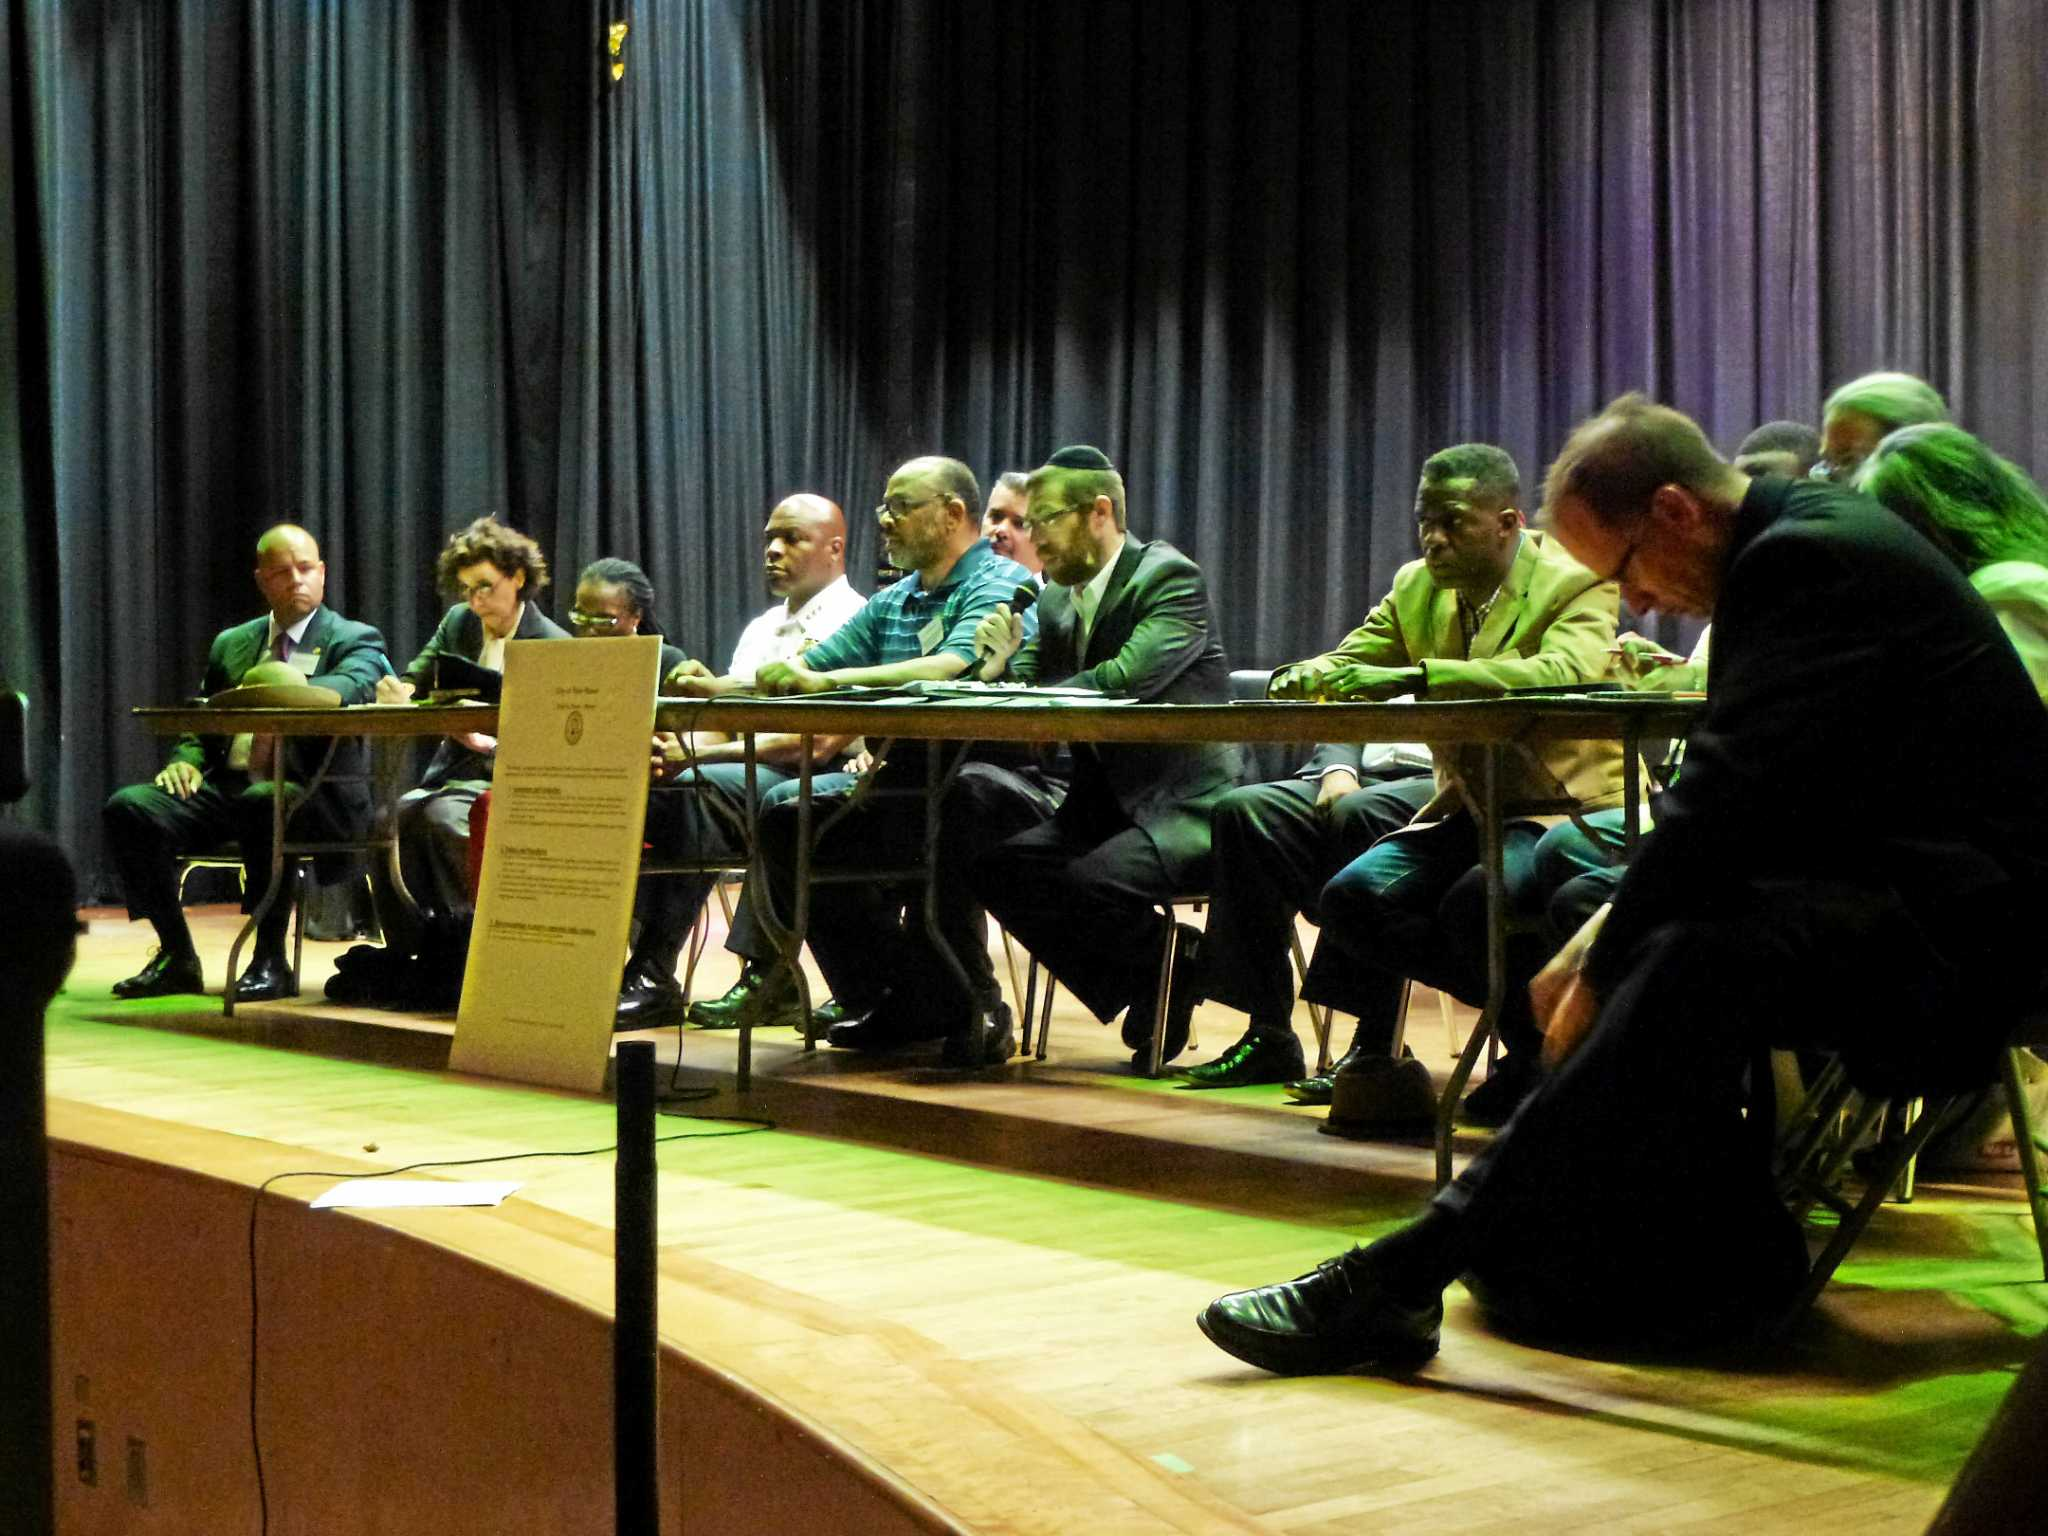 Task force in New Haven hears suggestions on police, policy